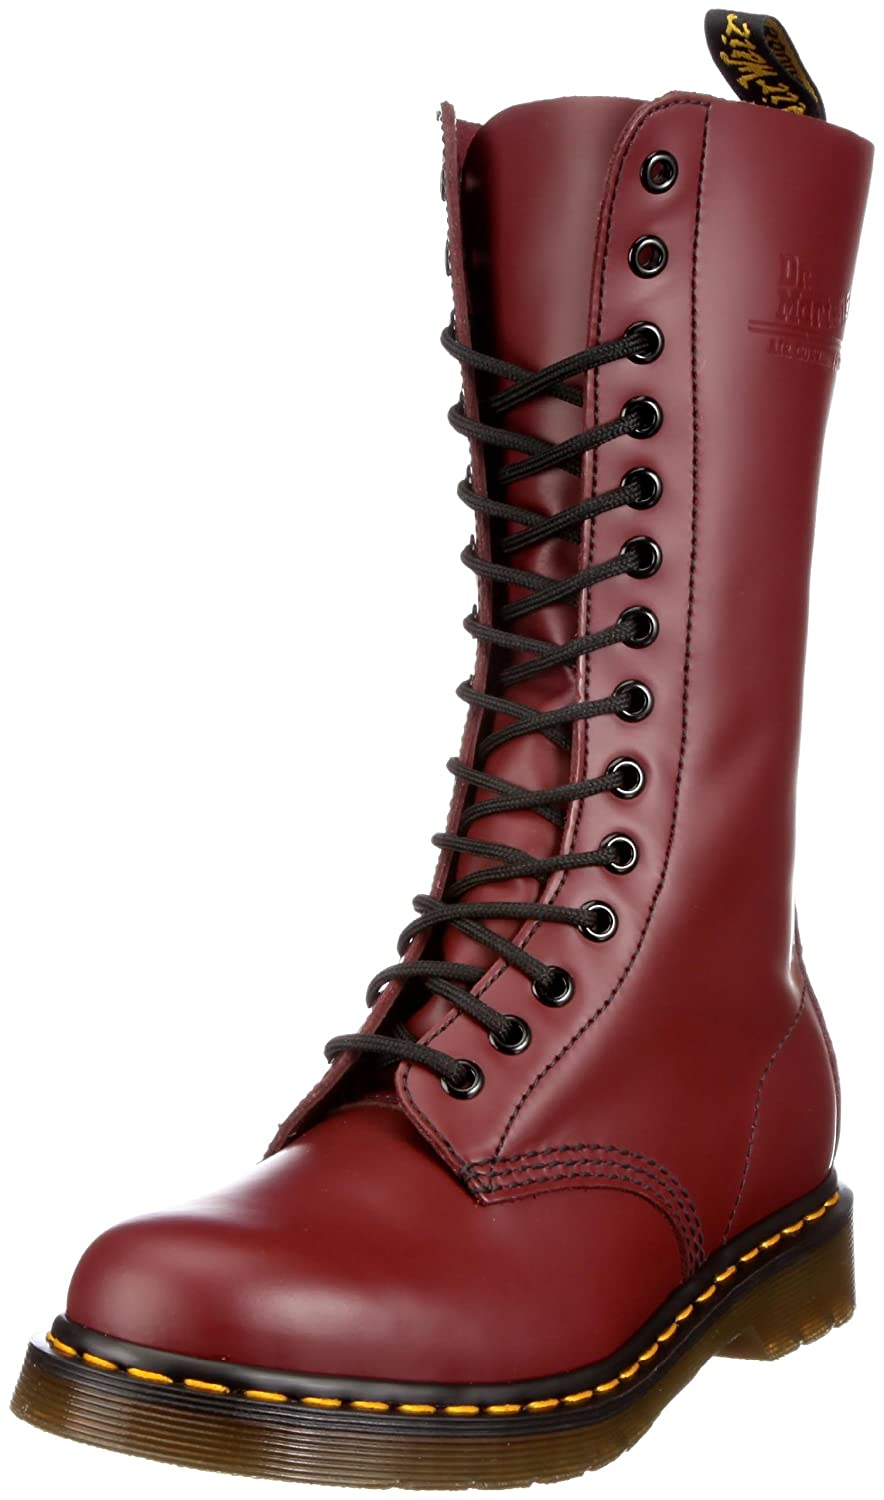 Dr. Martens 1914, Boots Red) mixte adulte adulte Rouge 19999 (Cherry Red) 398a139 - latesttechnology.space